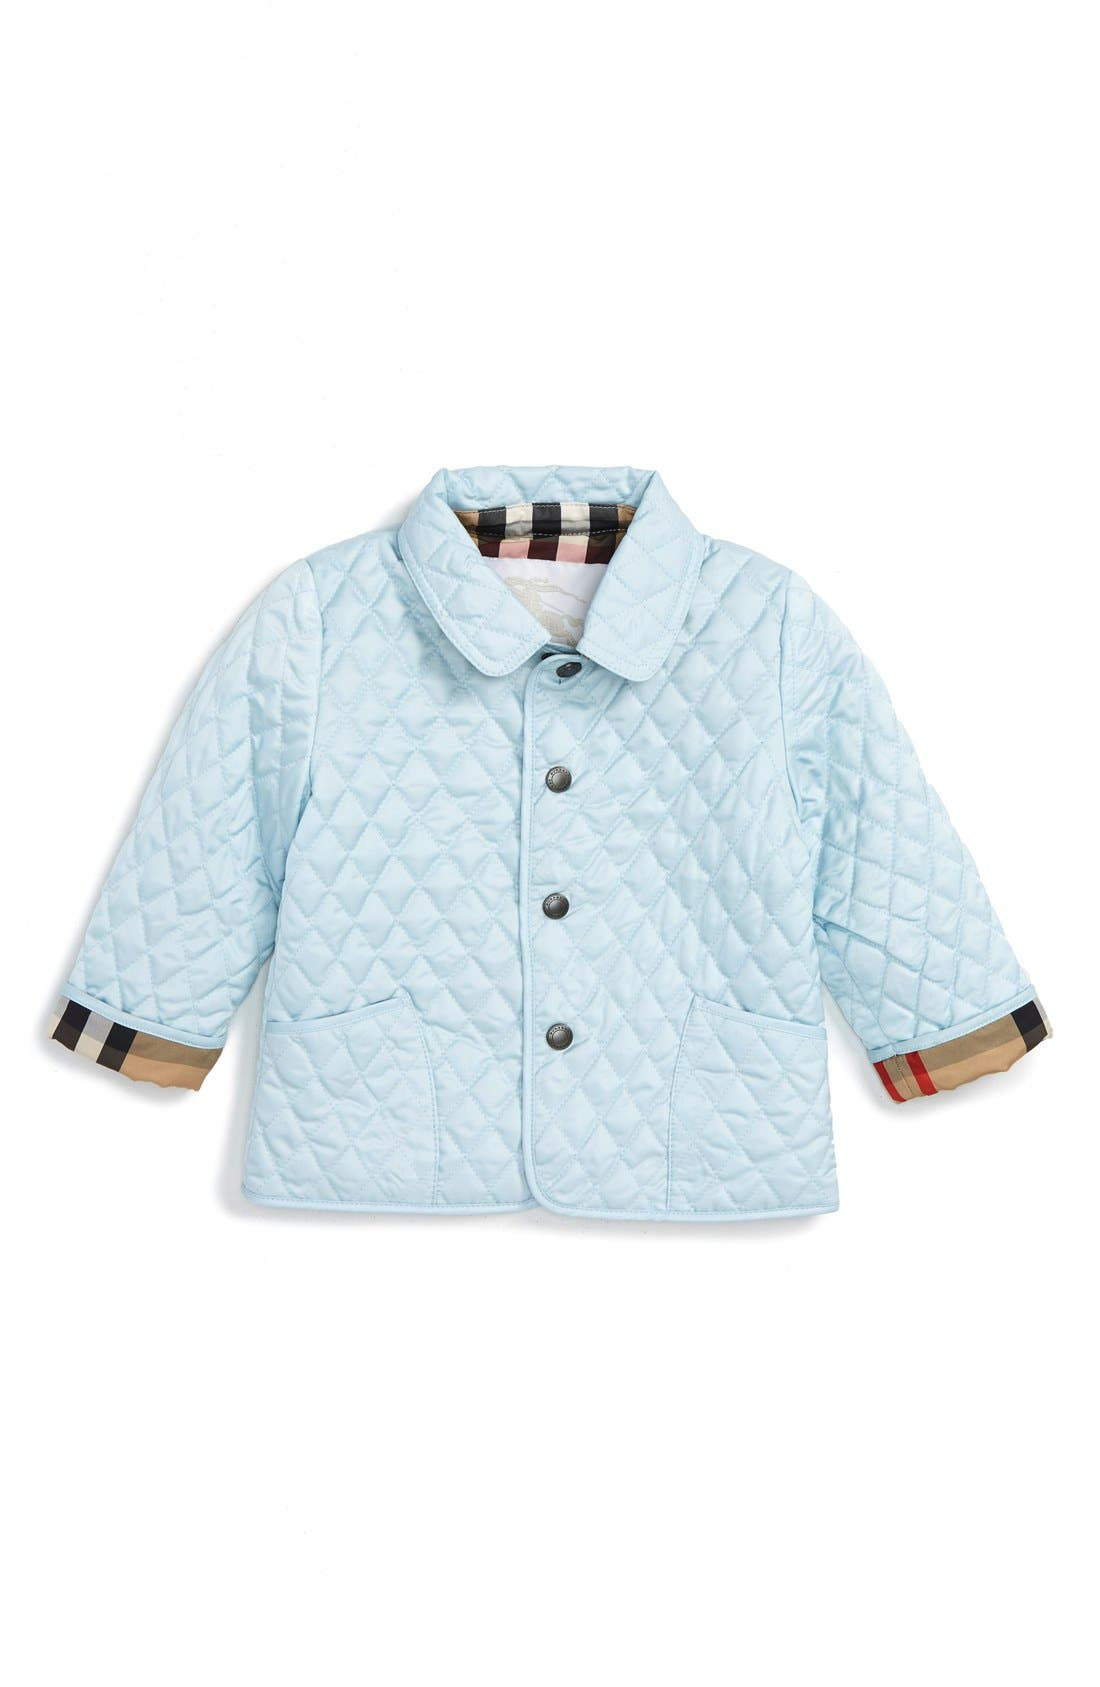 BURBERRY 'Colin' Quilted Jacket